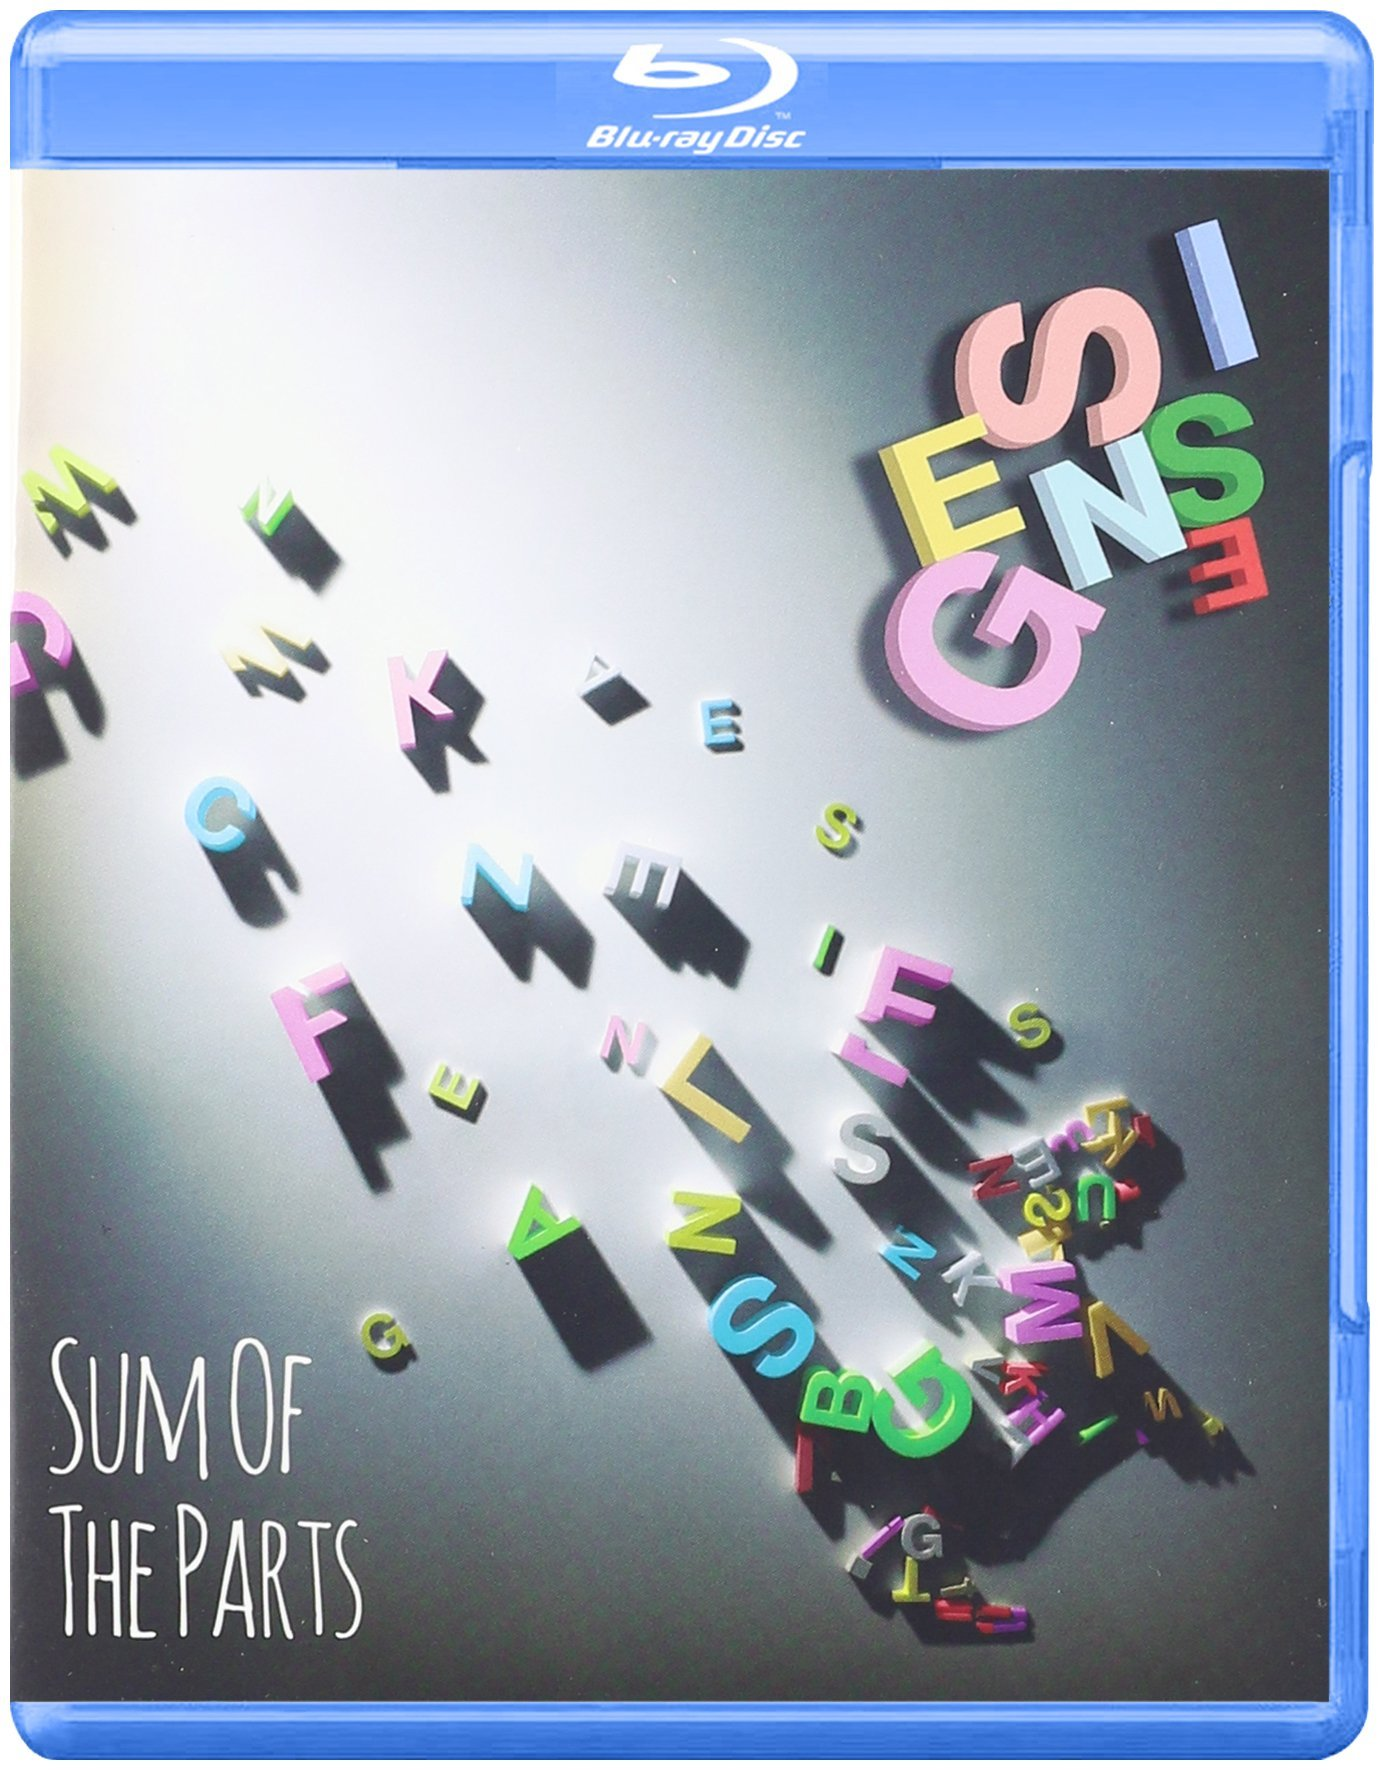 Blu-ray : Genesis - Sum of the Parts (Blu-ray)